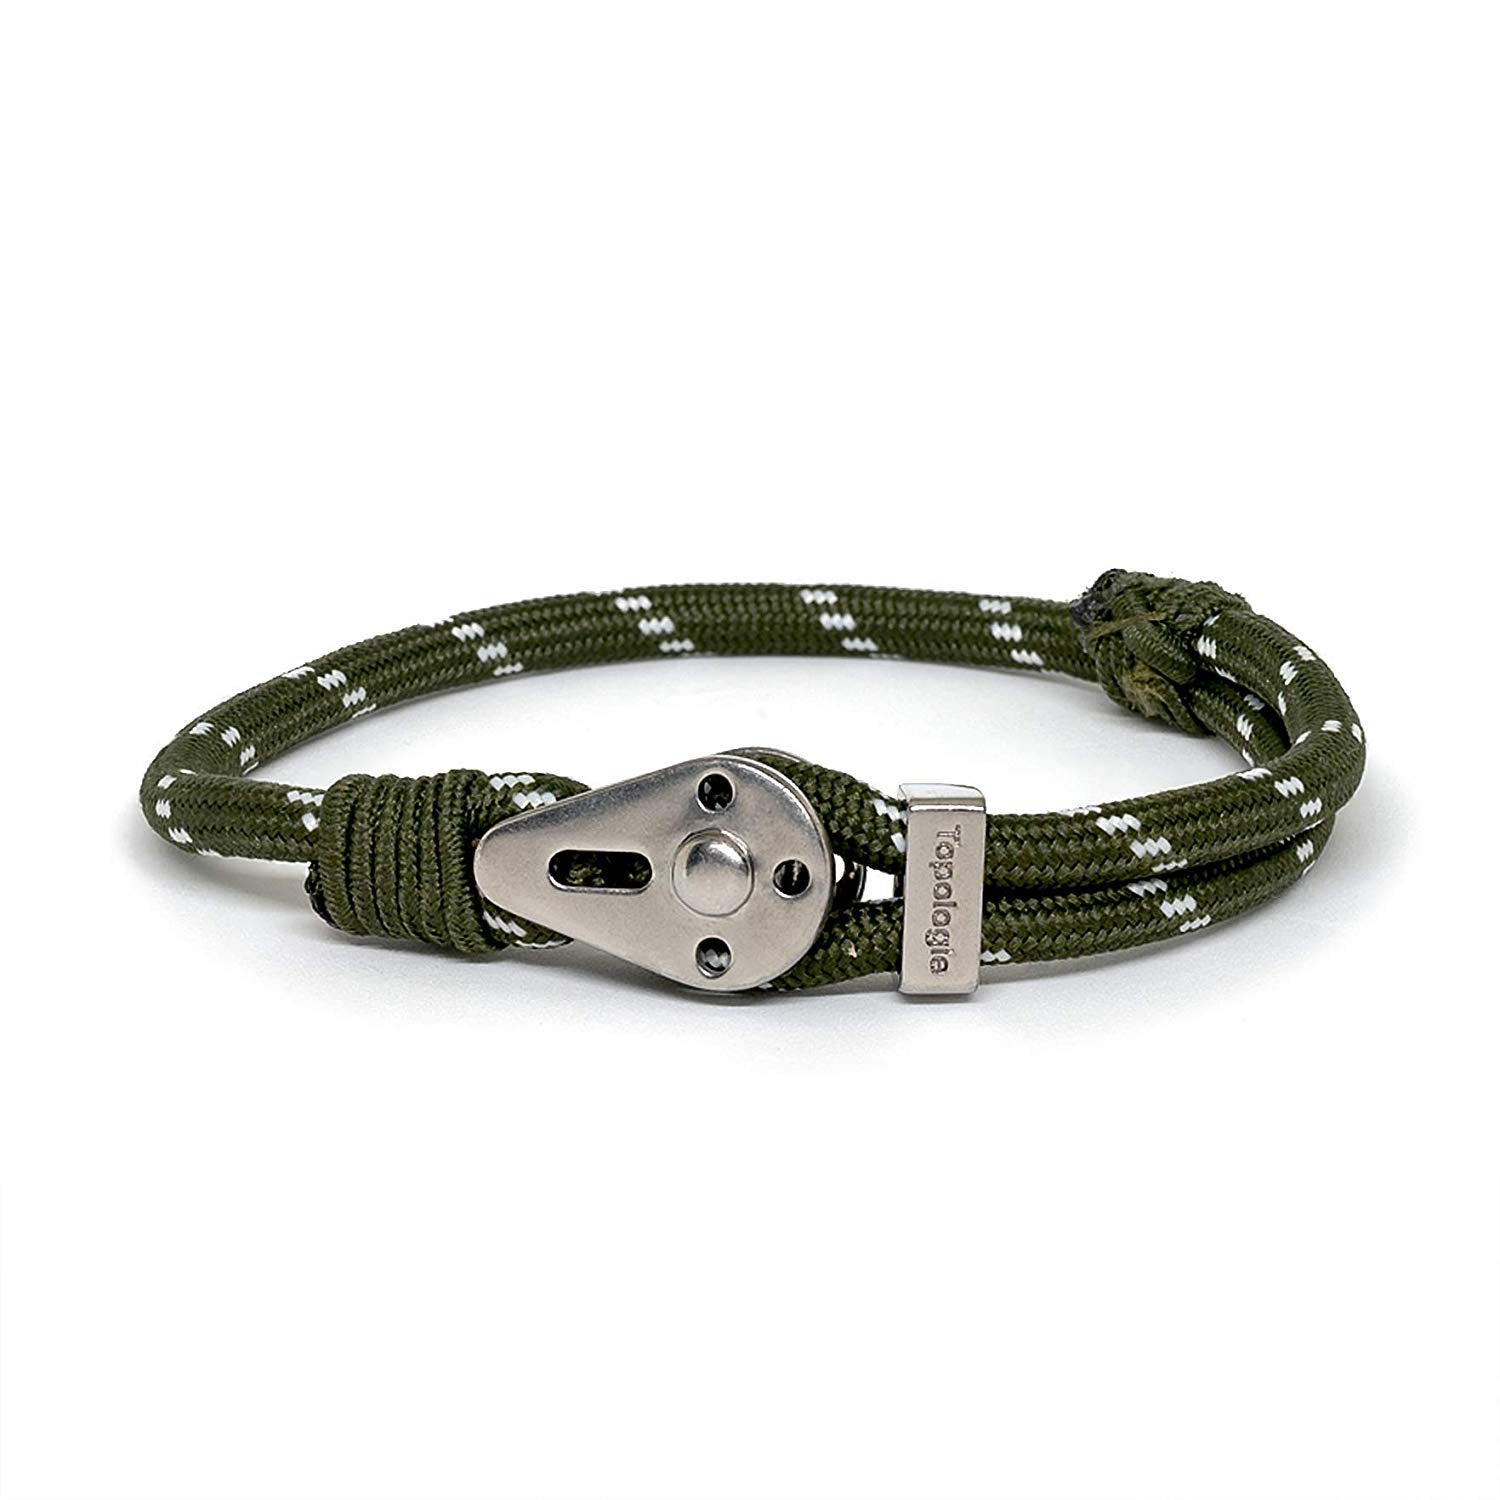 Yosemite / Green Patterned / Silver